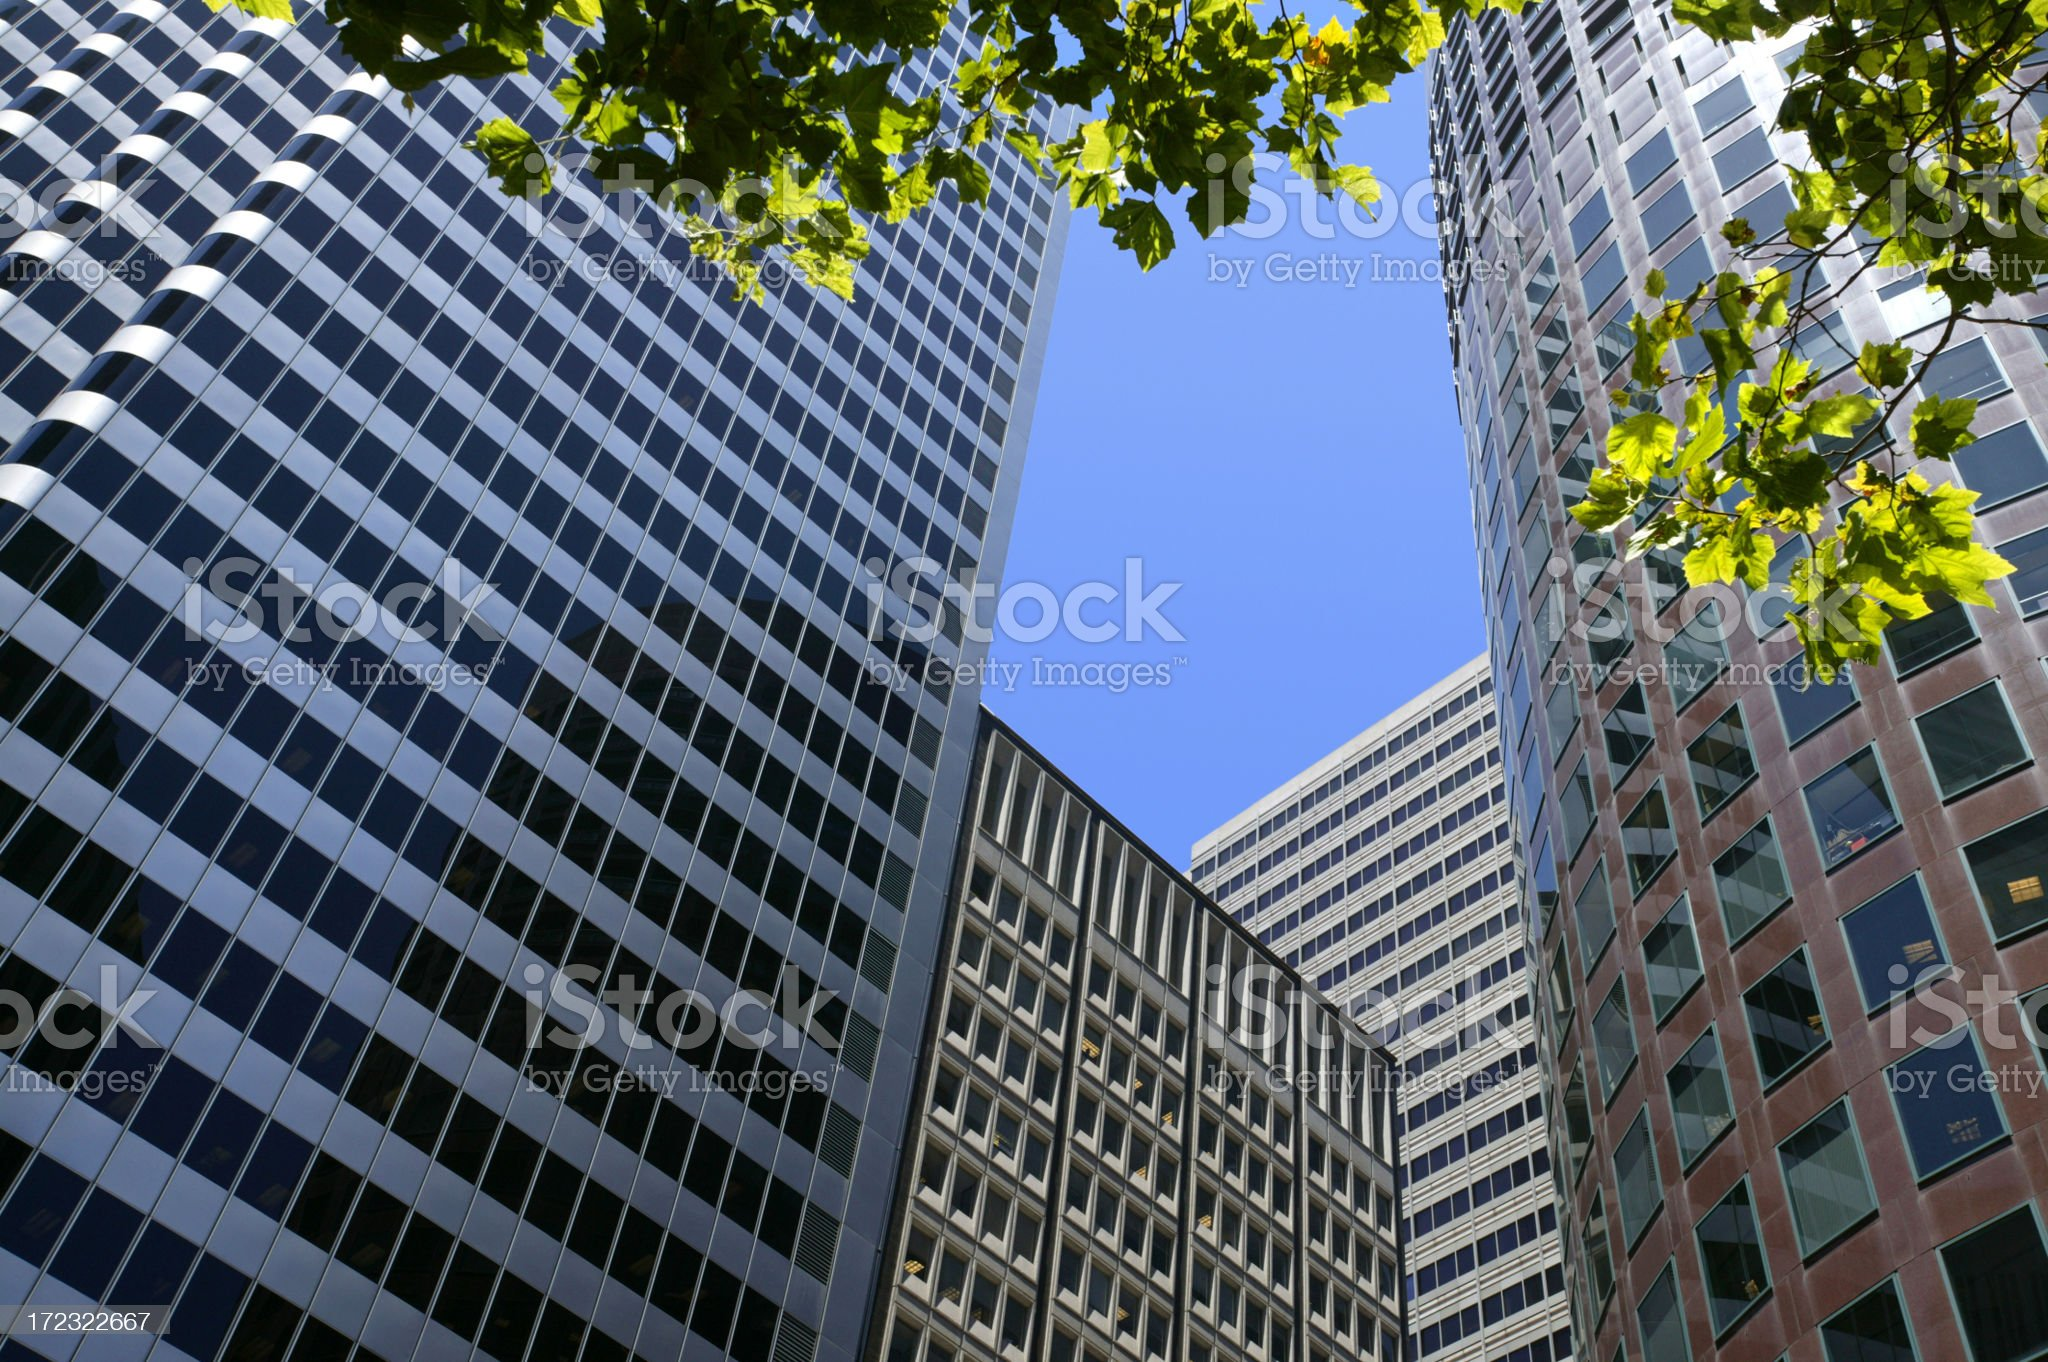 Generic Office Buildings royalty-free stock photo